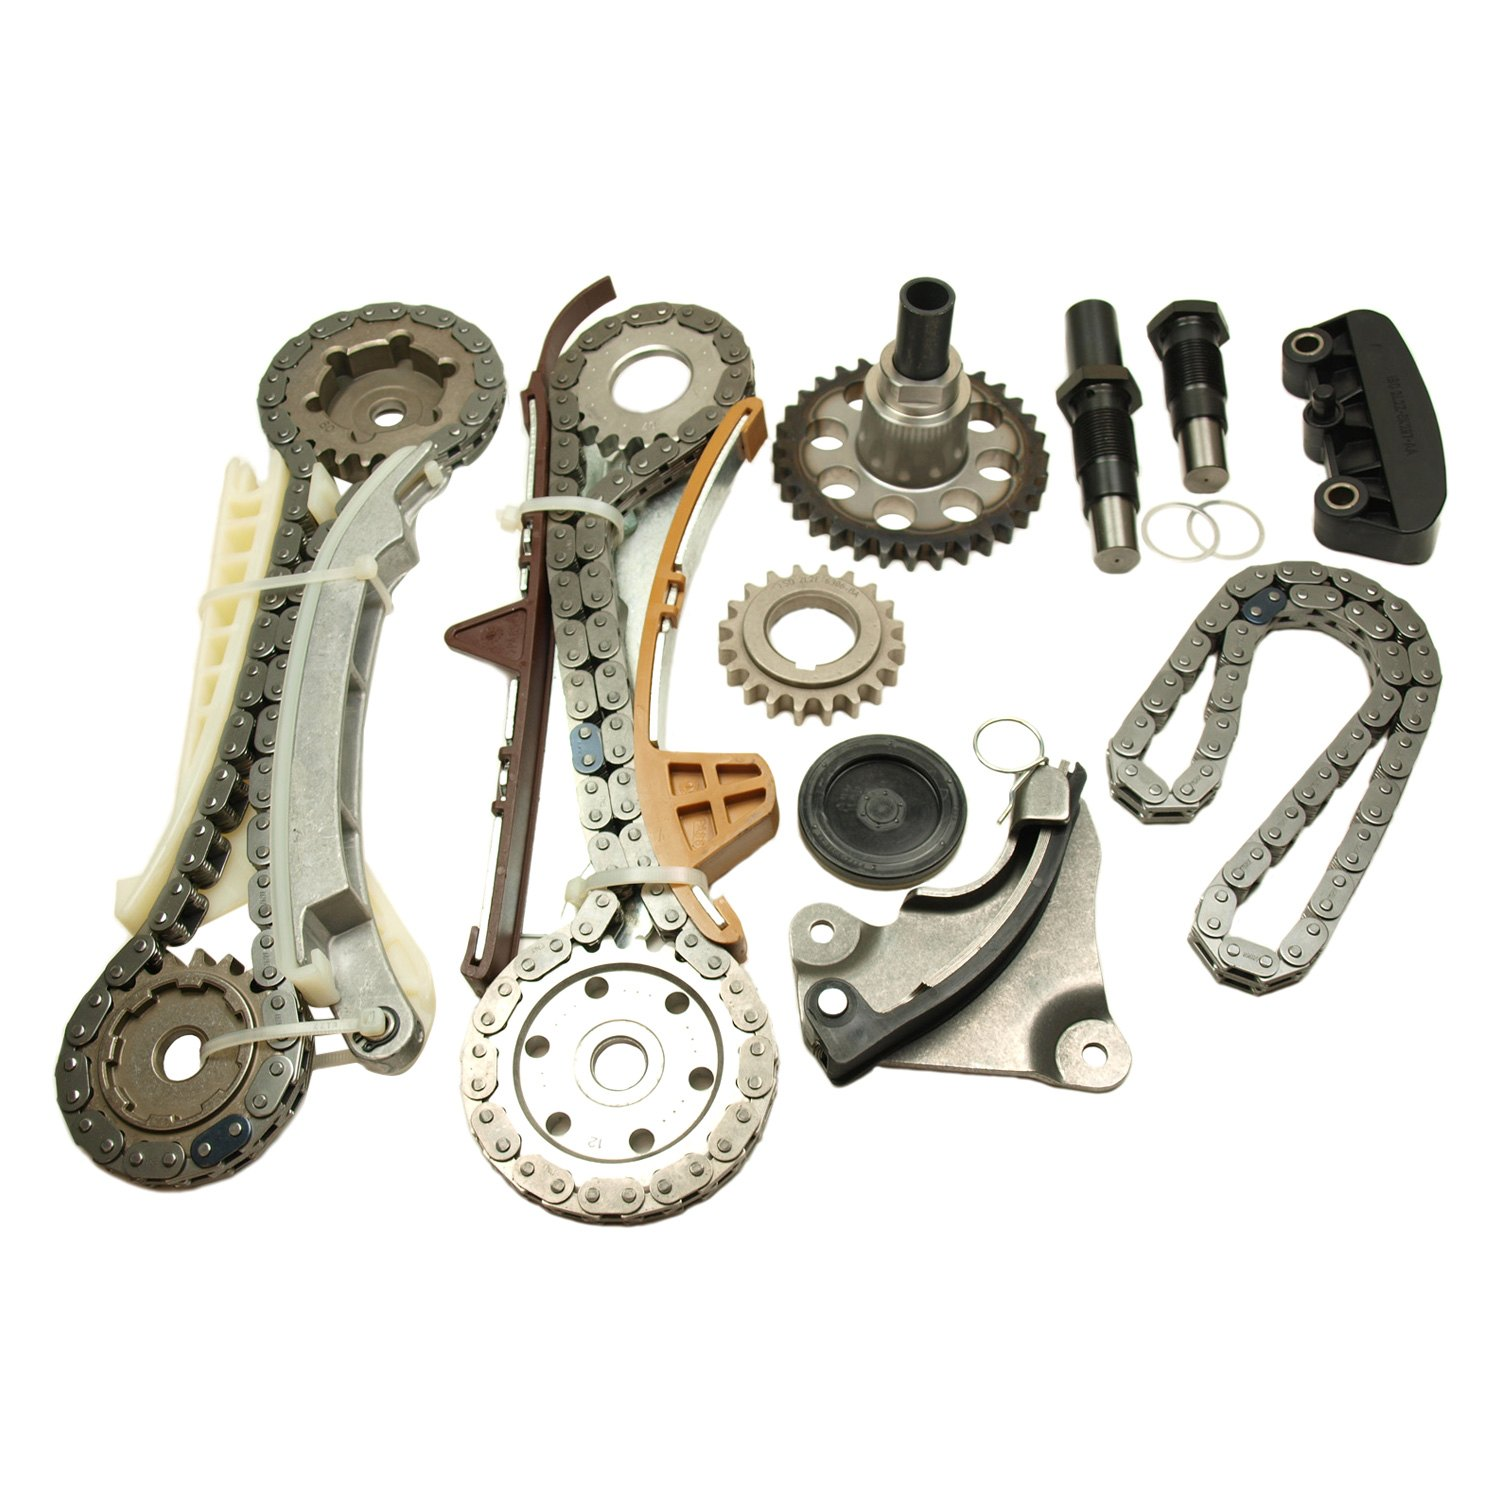 Ford Sport Trac 2003 Timing Chain Kit